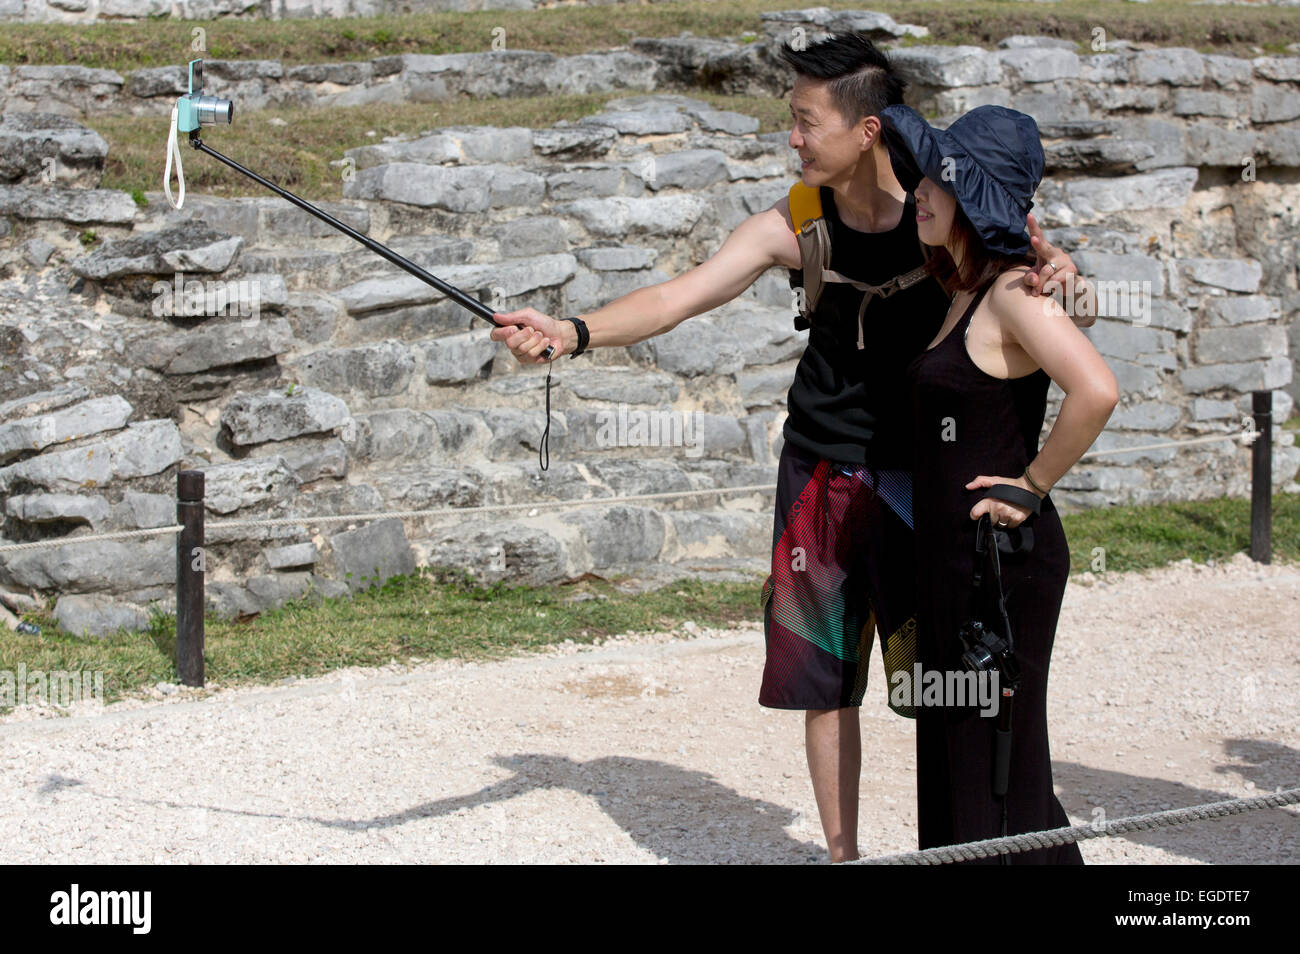 Tourists pose with a selfie stick at Tulum, Quintana Roo, Mexico - Stock Image